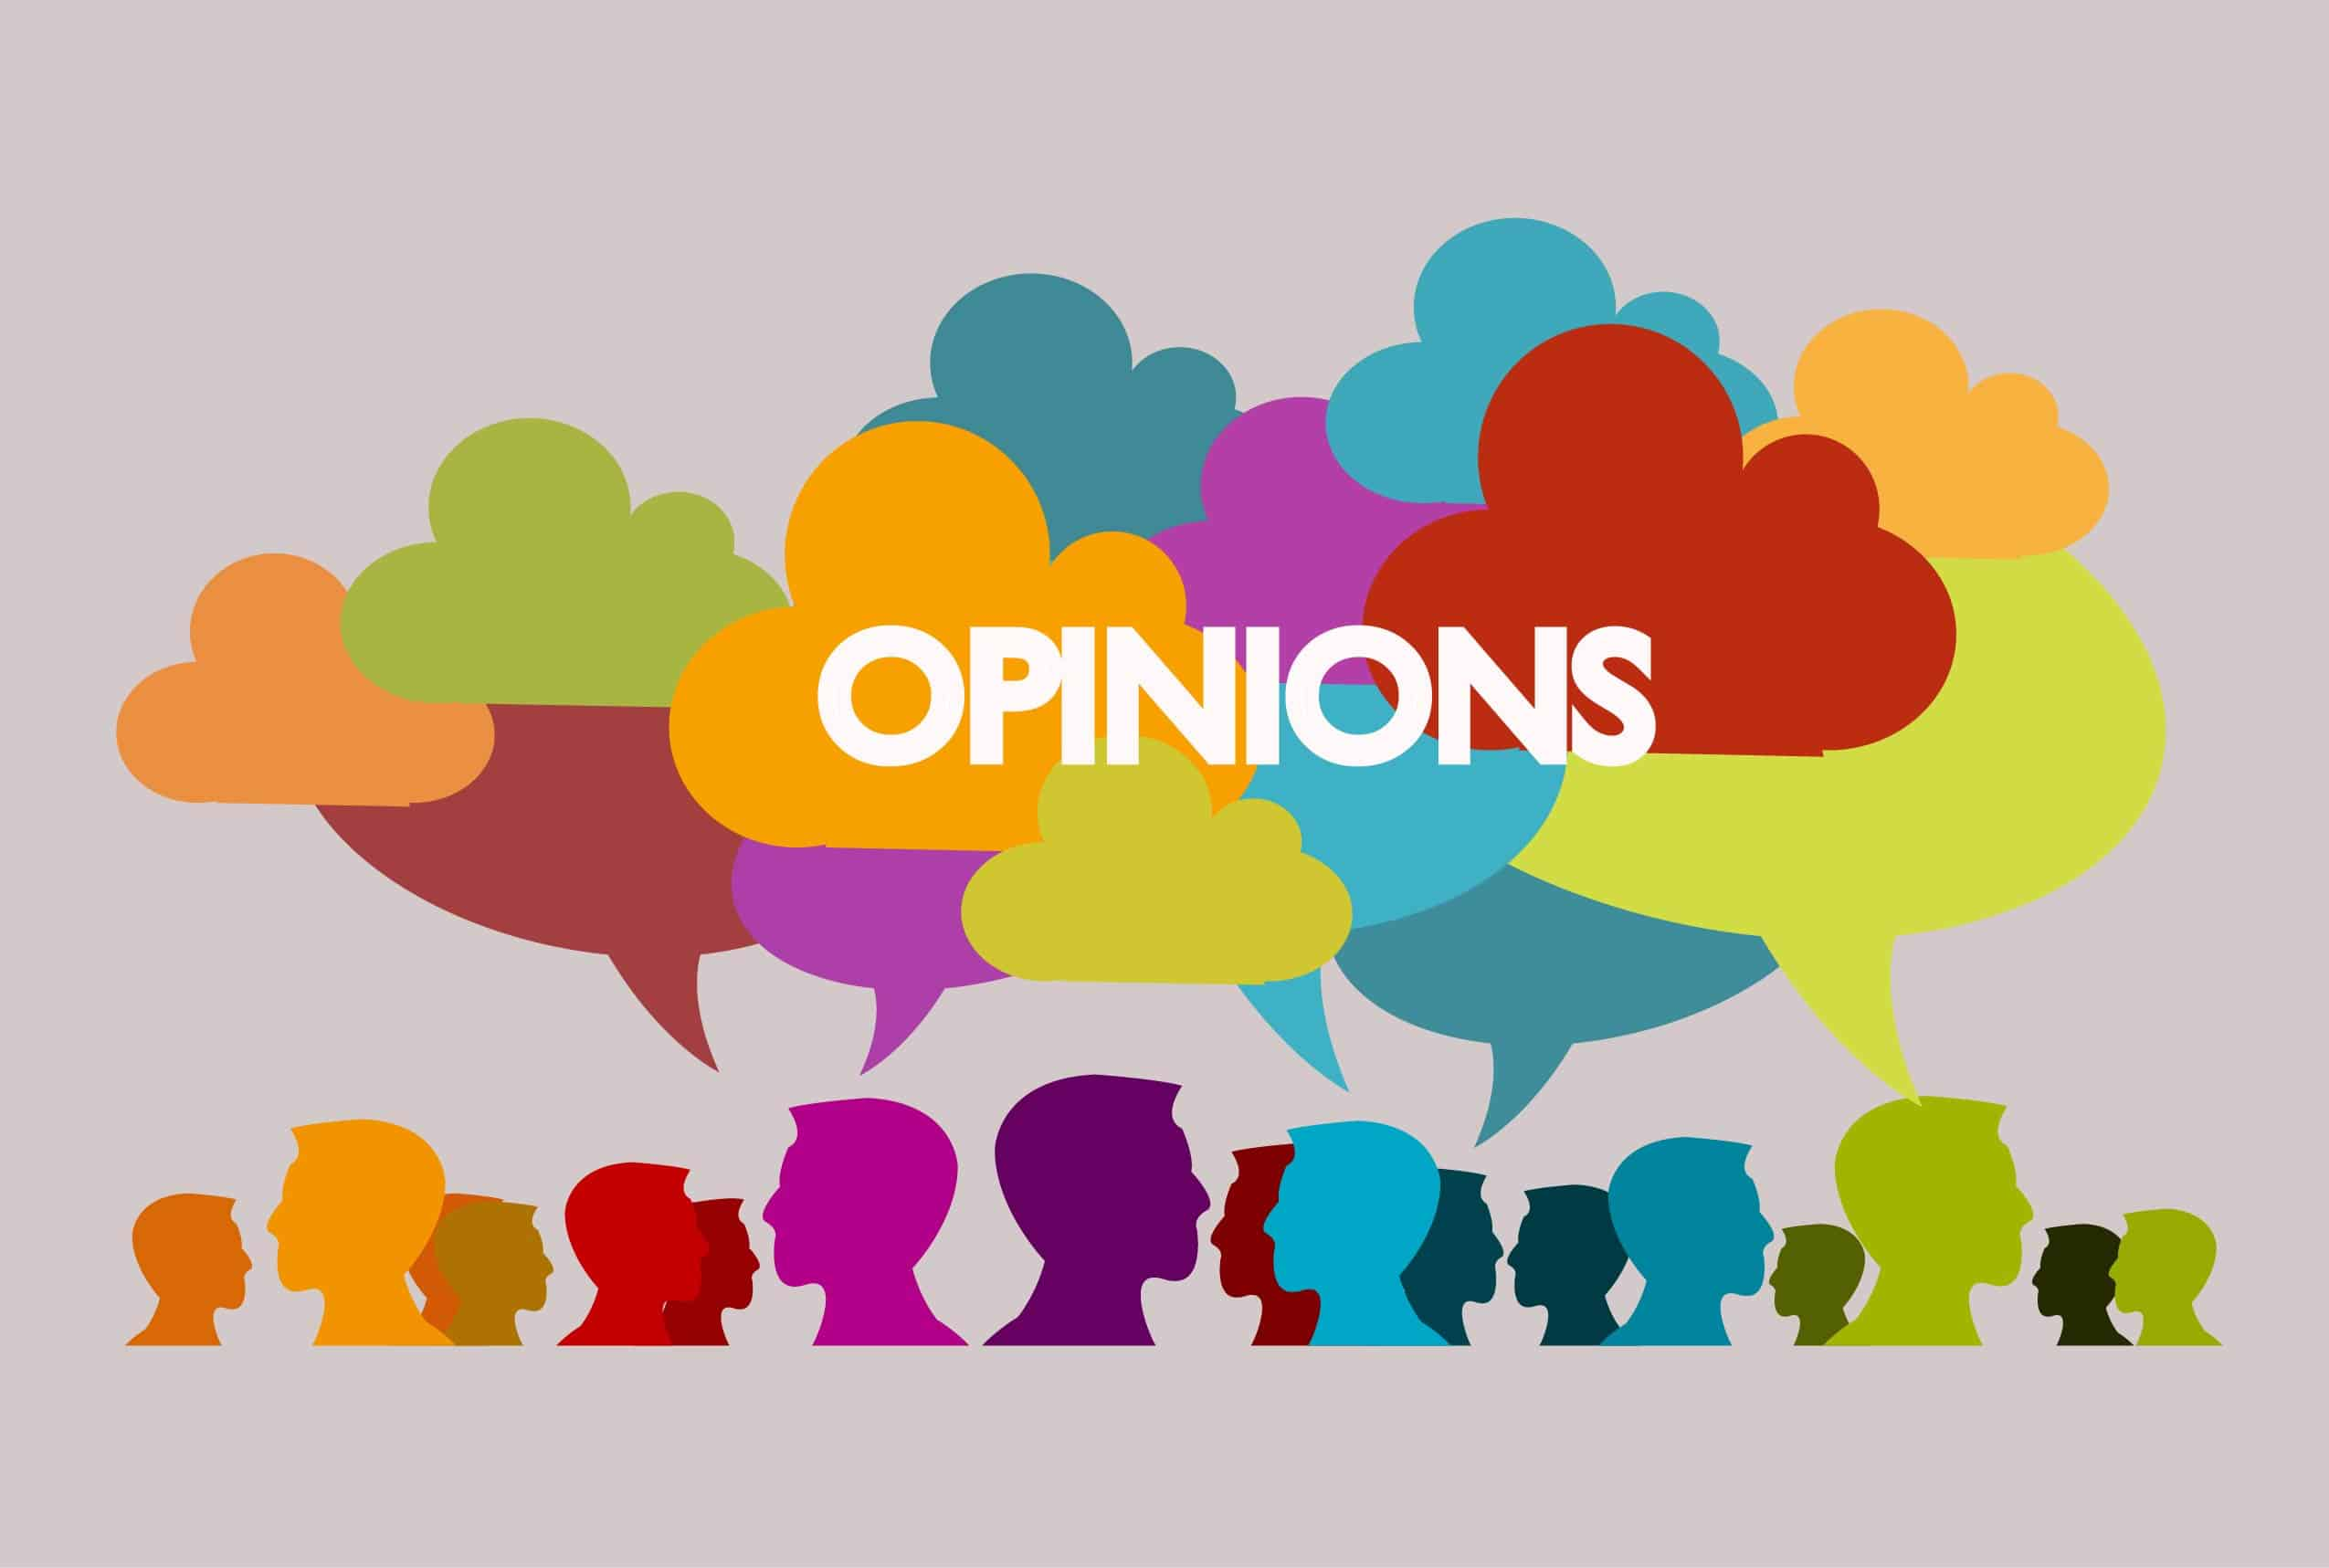 Soal-Bahasa-Inggris-Kelas-6-Asking-and-Giving-Opinion